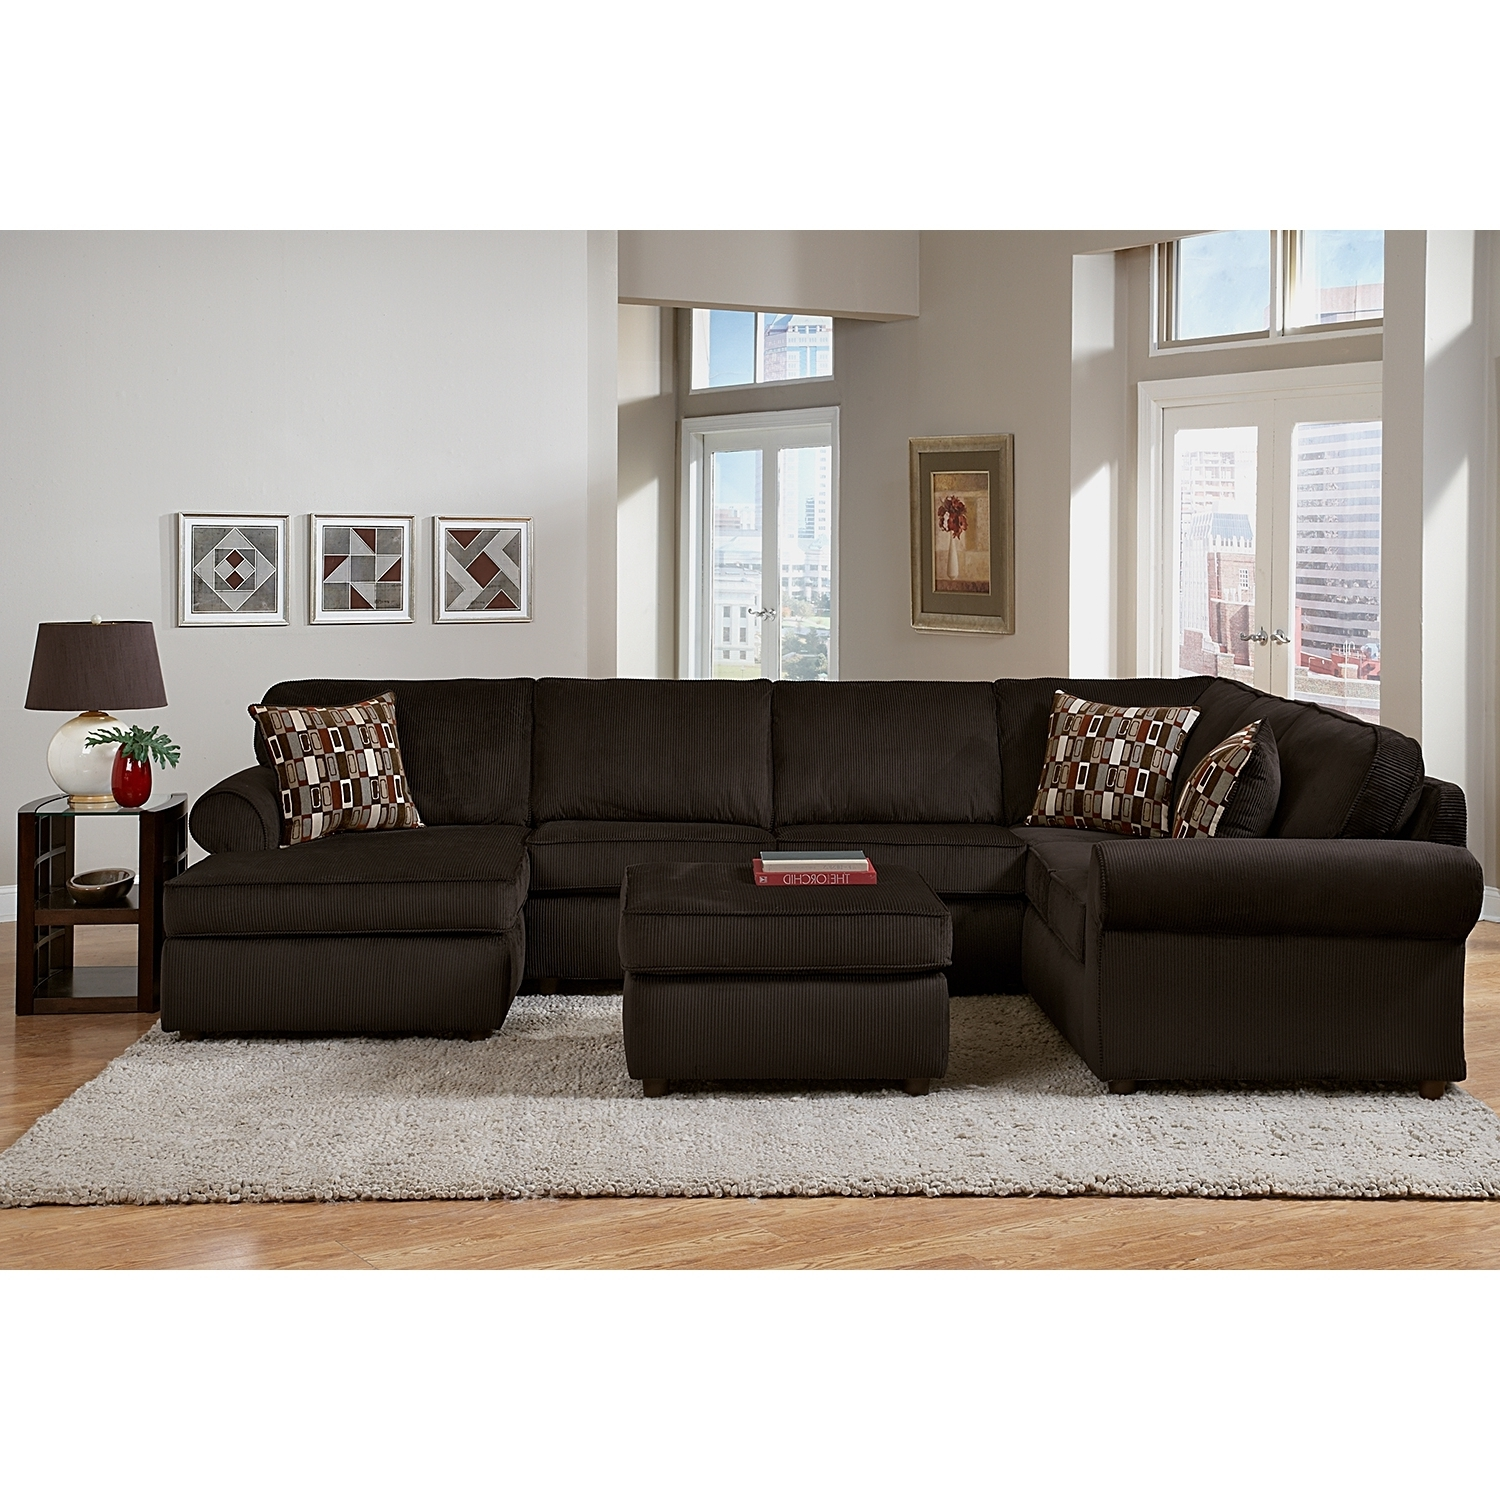 Current Picture 5 Of 34 – Sectional Sofas Sale Luxury Stunning Value City With Scarborough Sectional Sofas (View 1 of 15)